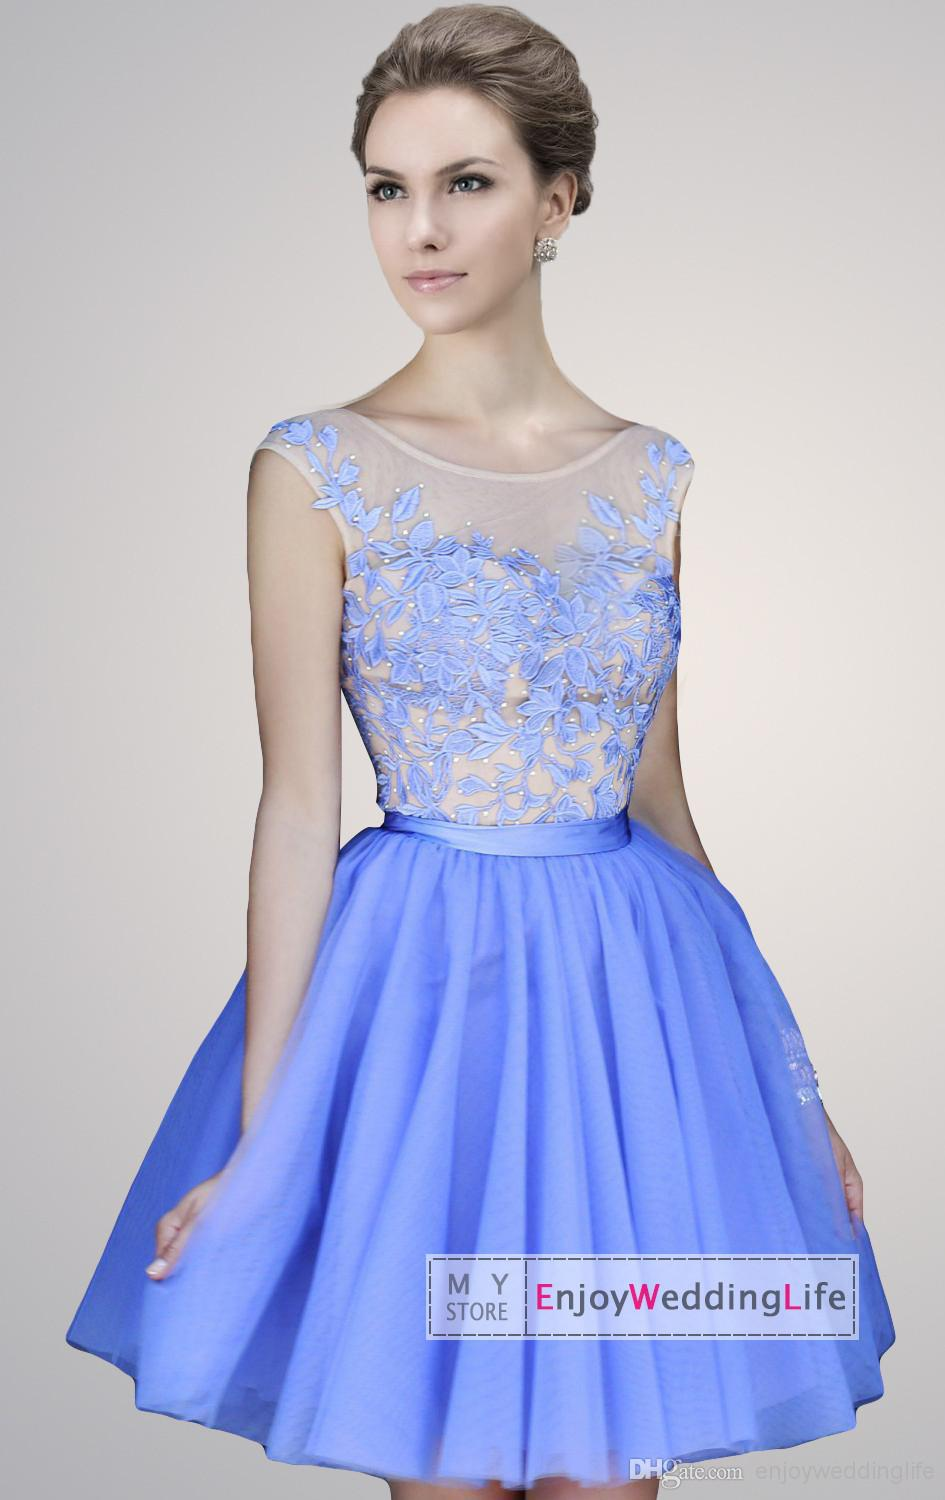 Discount 2015 New Sexy Scoop Collar Tulle Short Homecoming Dresses Lace Applique Beaded Mini Backless Party Cocktail Gowns SH11171 Online with $100.53/Piece | DHgate